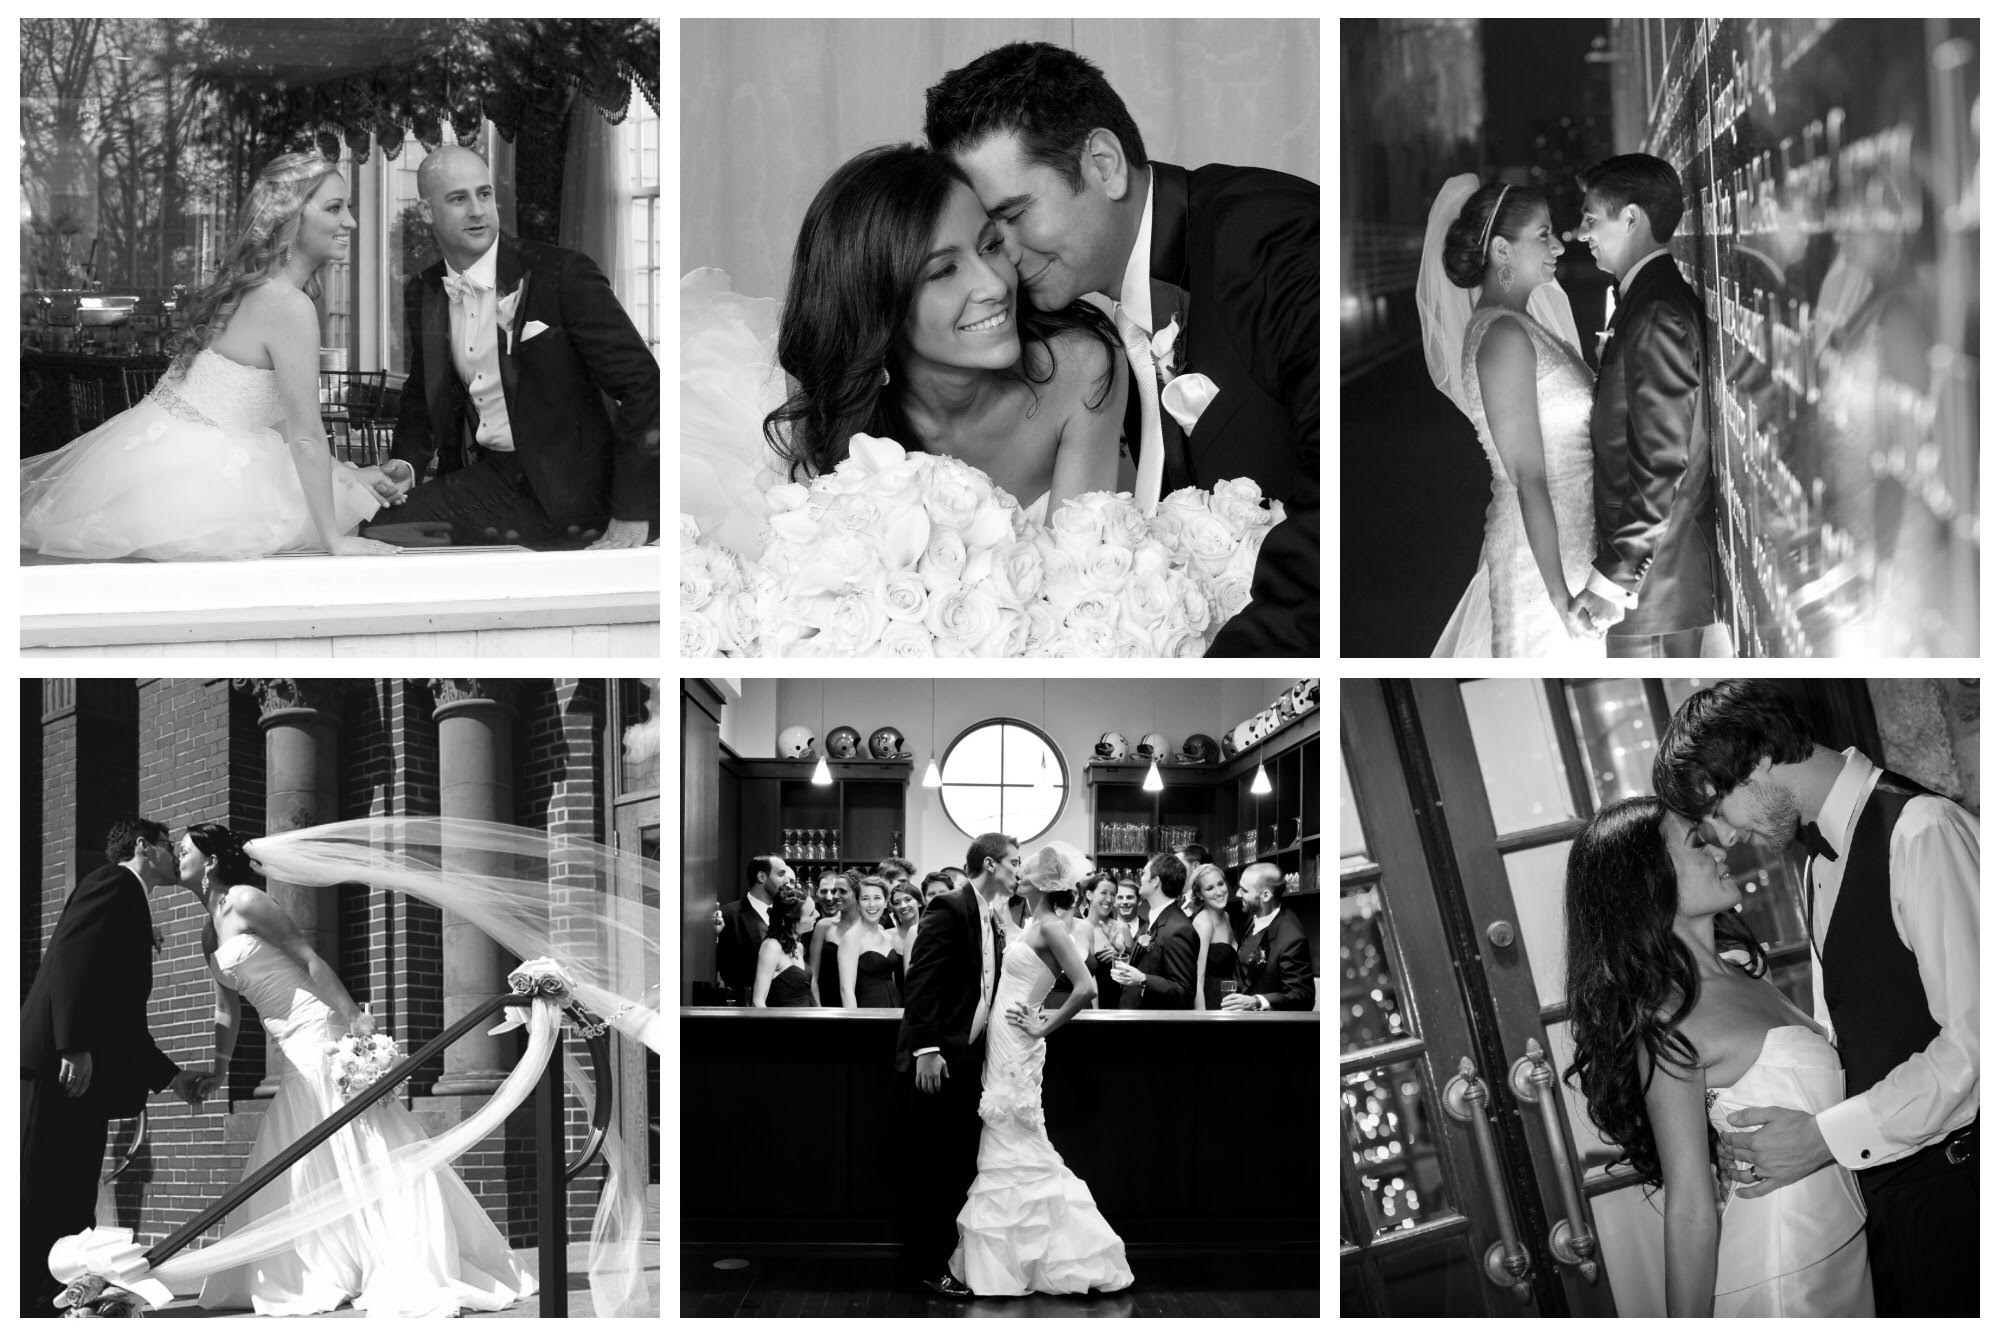 Black And White Top Wedding Dj Entertainment Photography Award Winning